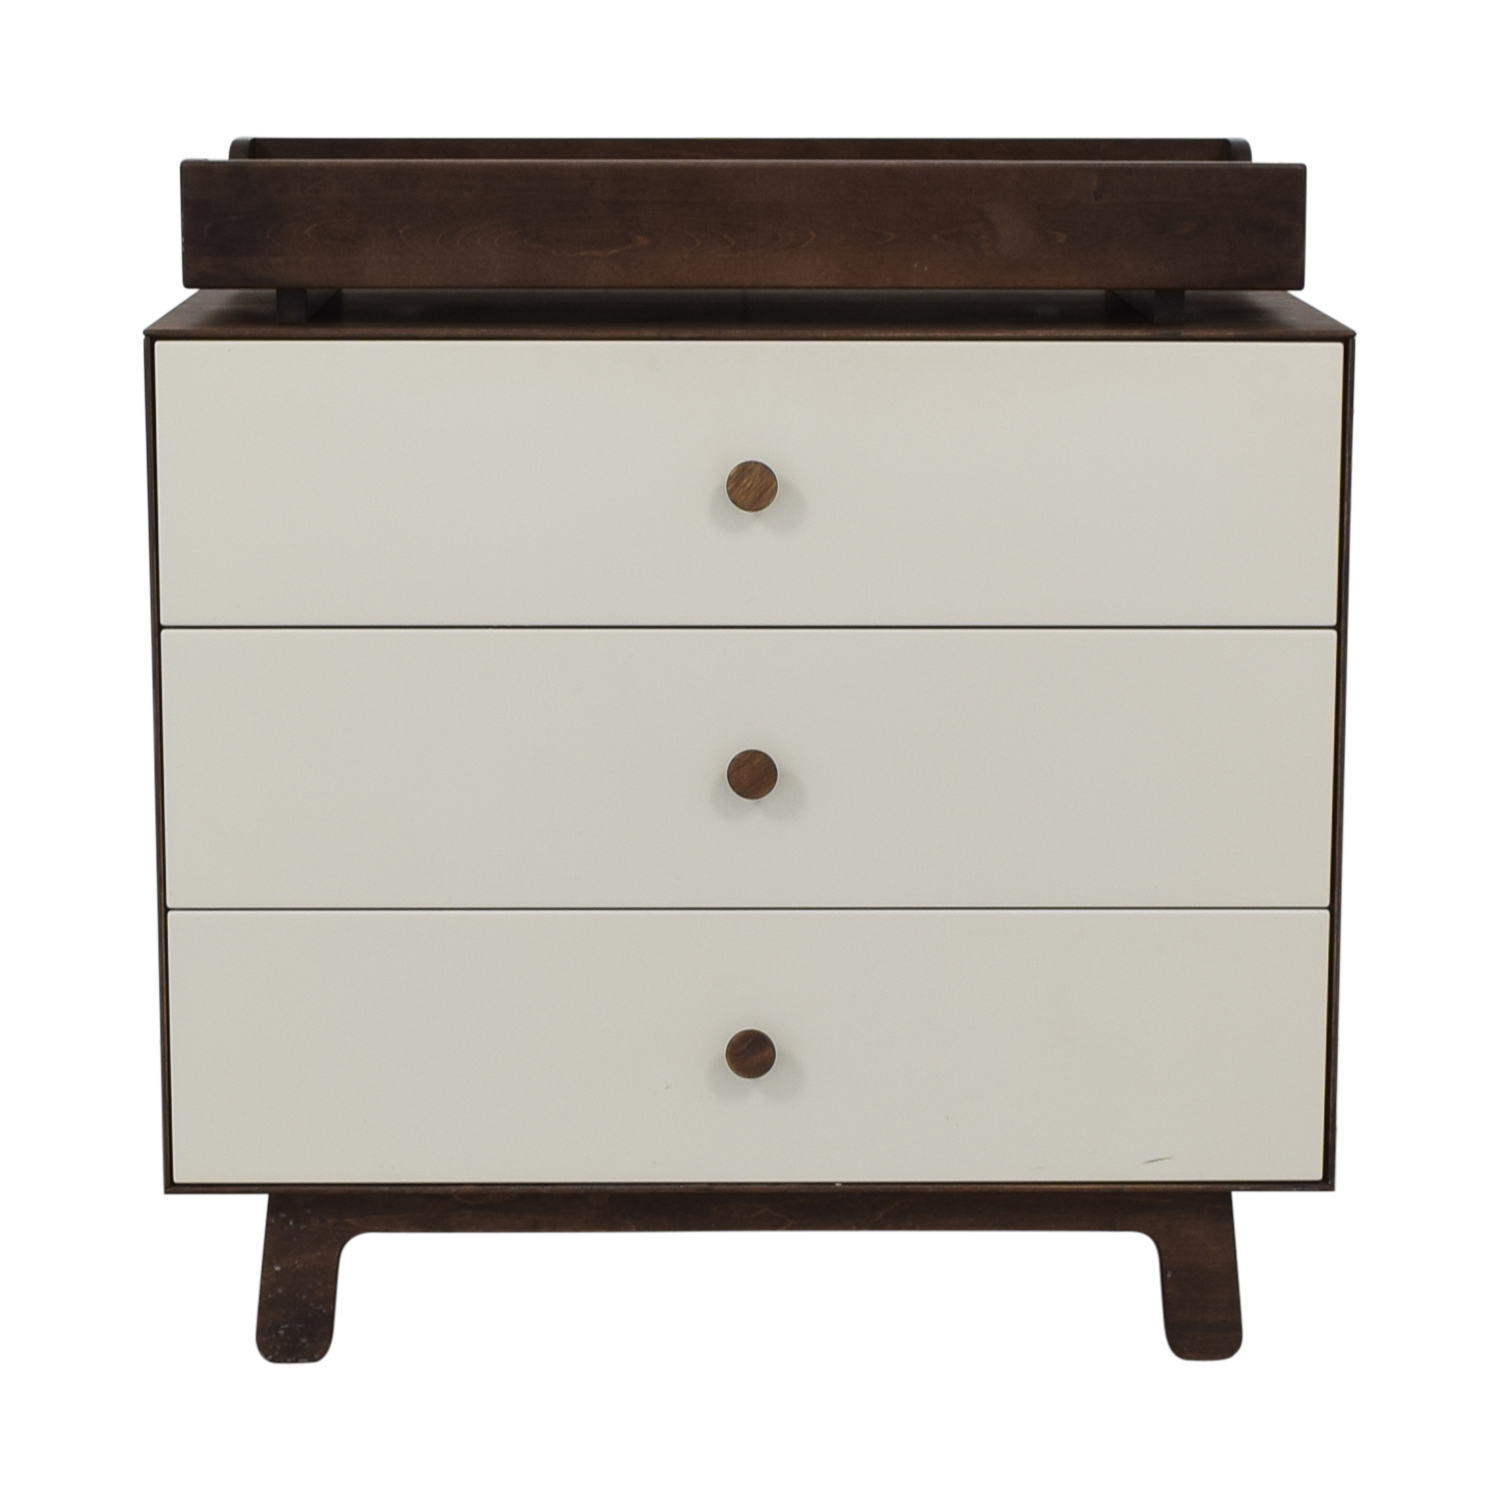 Oeuf Sparrow Three Drawer Dresser with Changing Top Oeuf